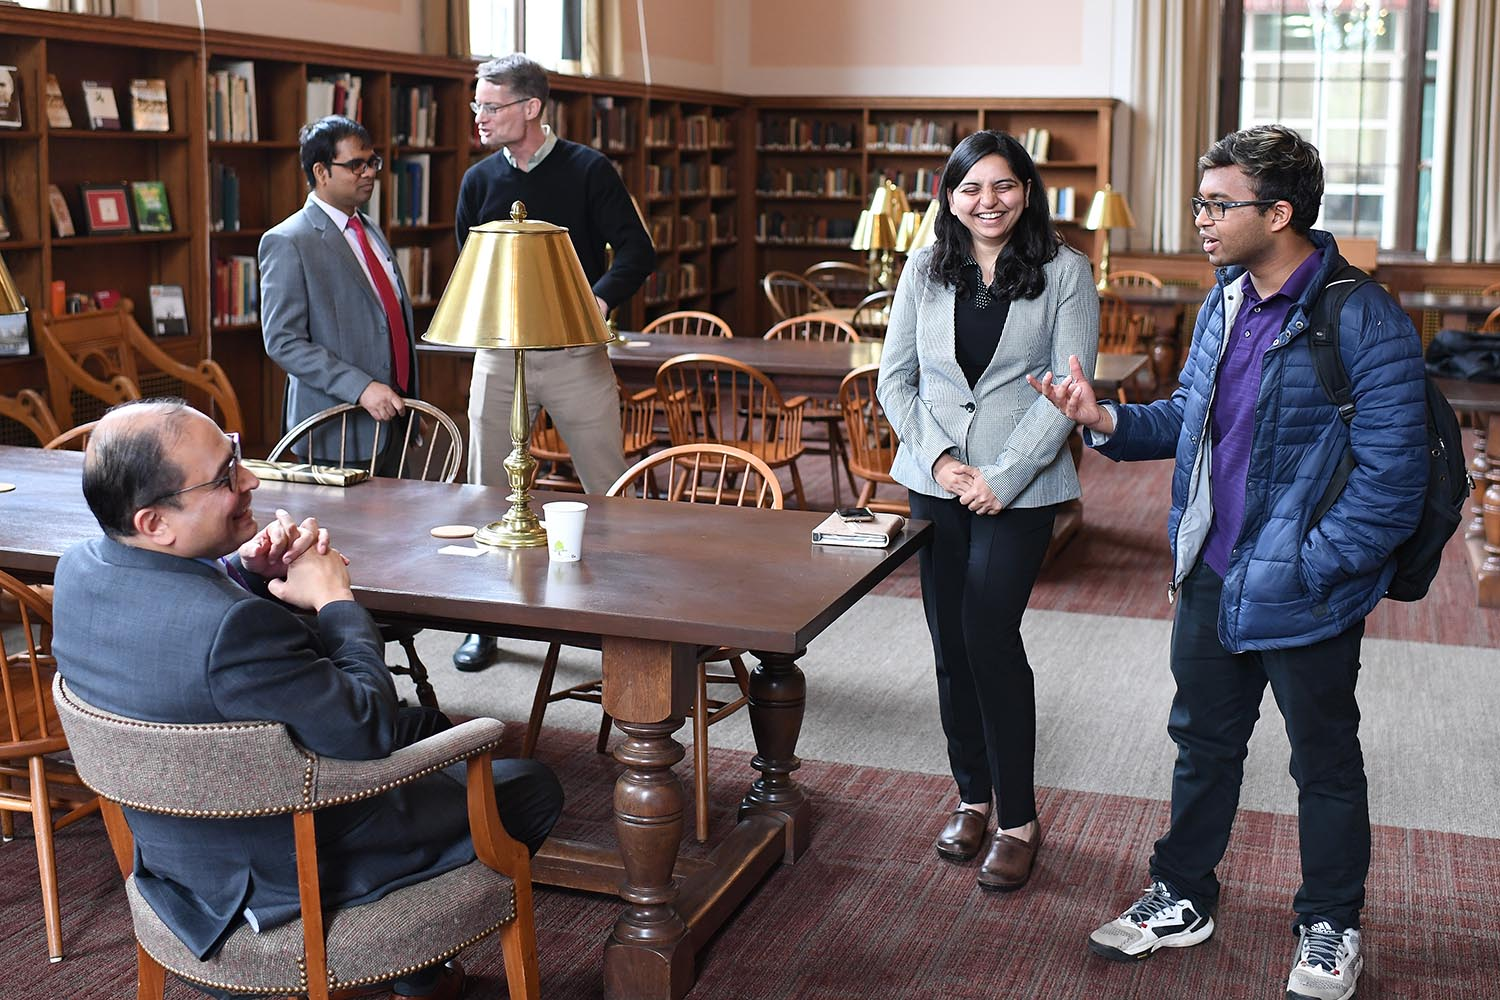 Consul Chakravorty met with several Wesleyan students including Thanmye Lagudu '20.